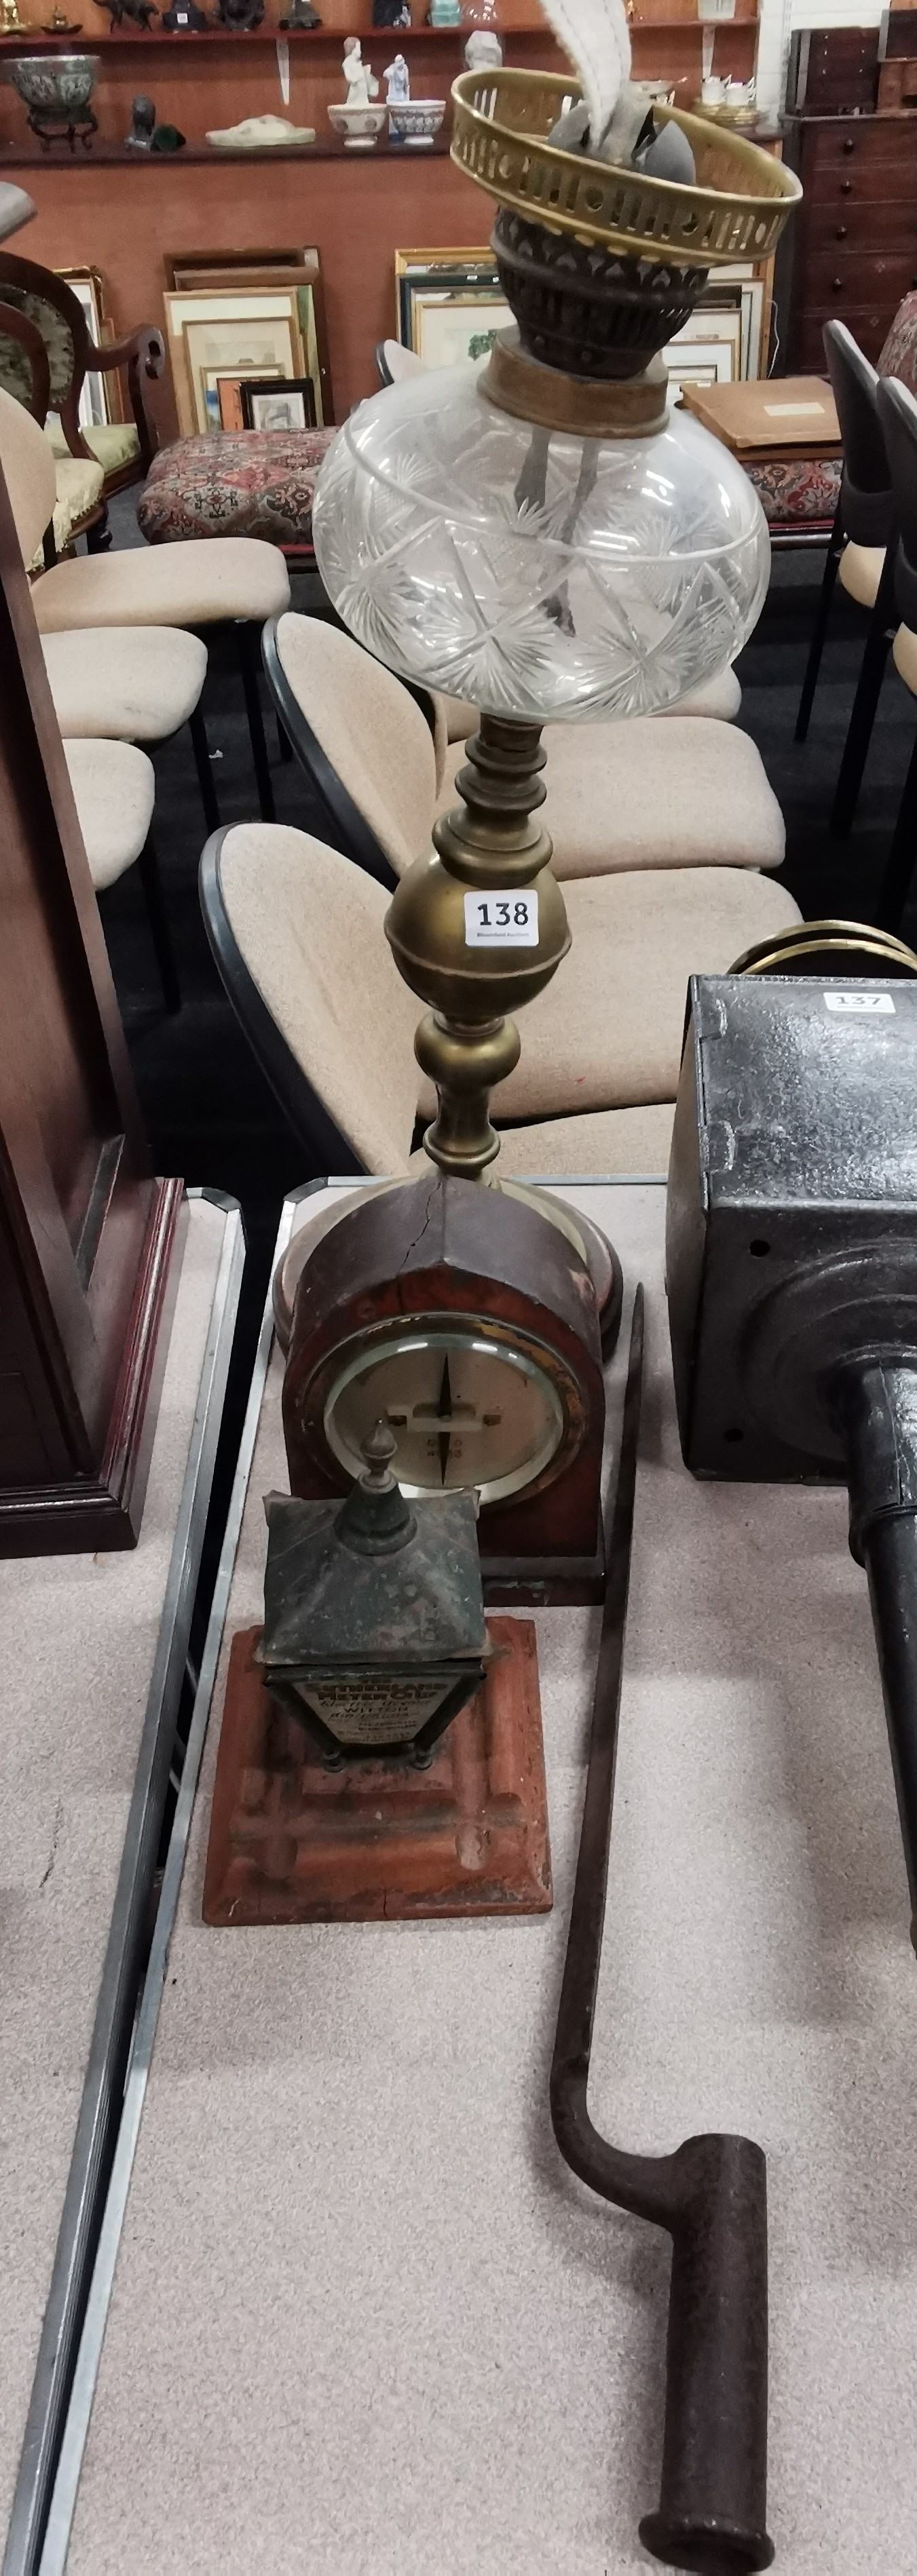 Lot 138 - BAYONET, OIL LAMP, ADVERTISING ASHTRAY & GPO METRE